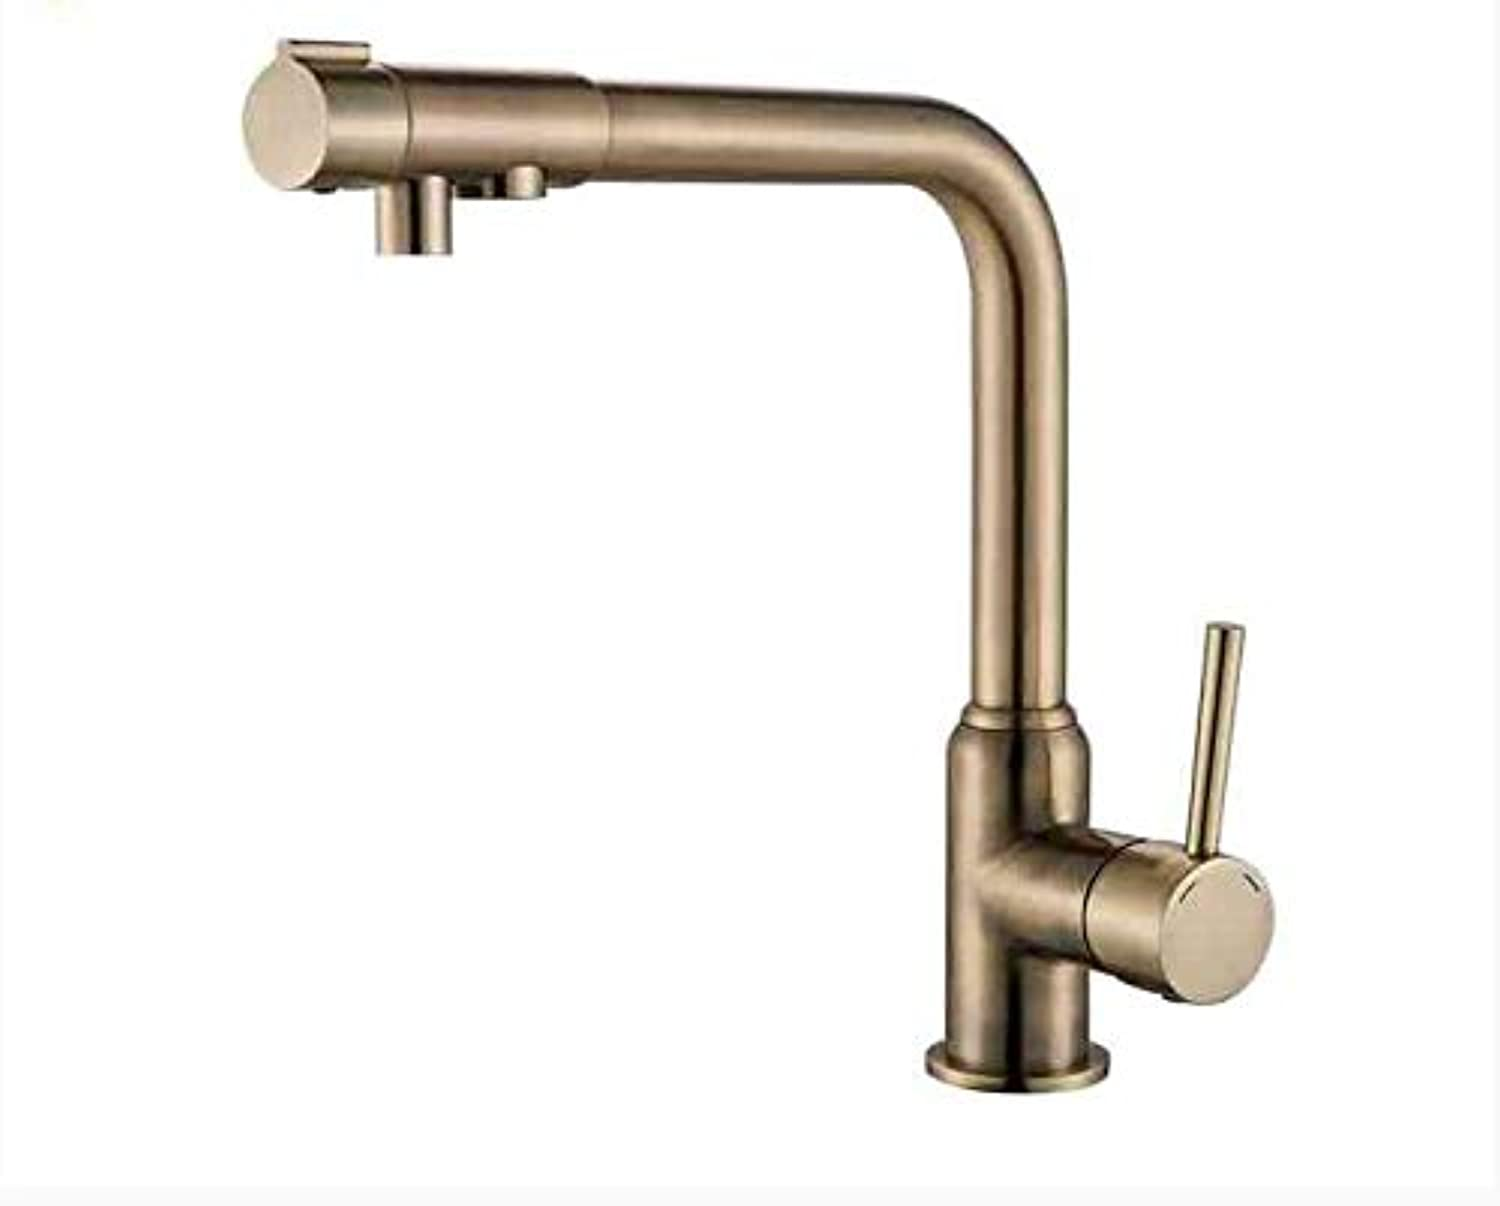 Decorry Antique Brass Kitchen Faucet Deck Mounted Hot and Cold Water Switch Single Handle One Hole Mixer Tap Ceramic Valve